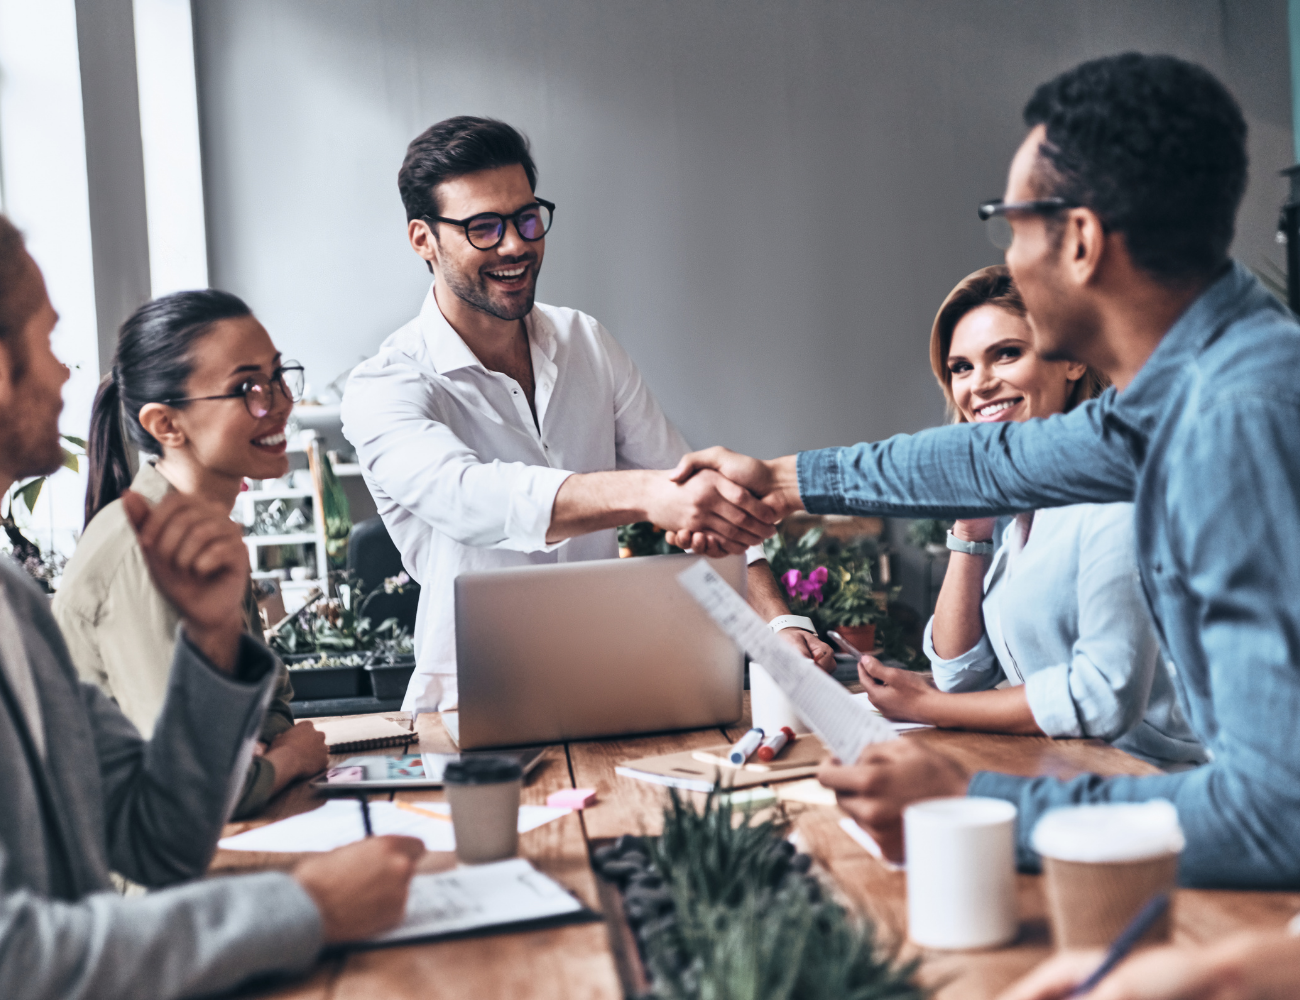 Here are 8 ideas on what to include in your employee welcome kit to engage new hires on their first day.